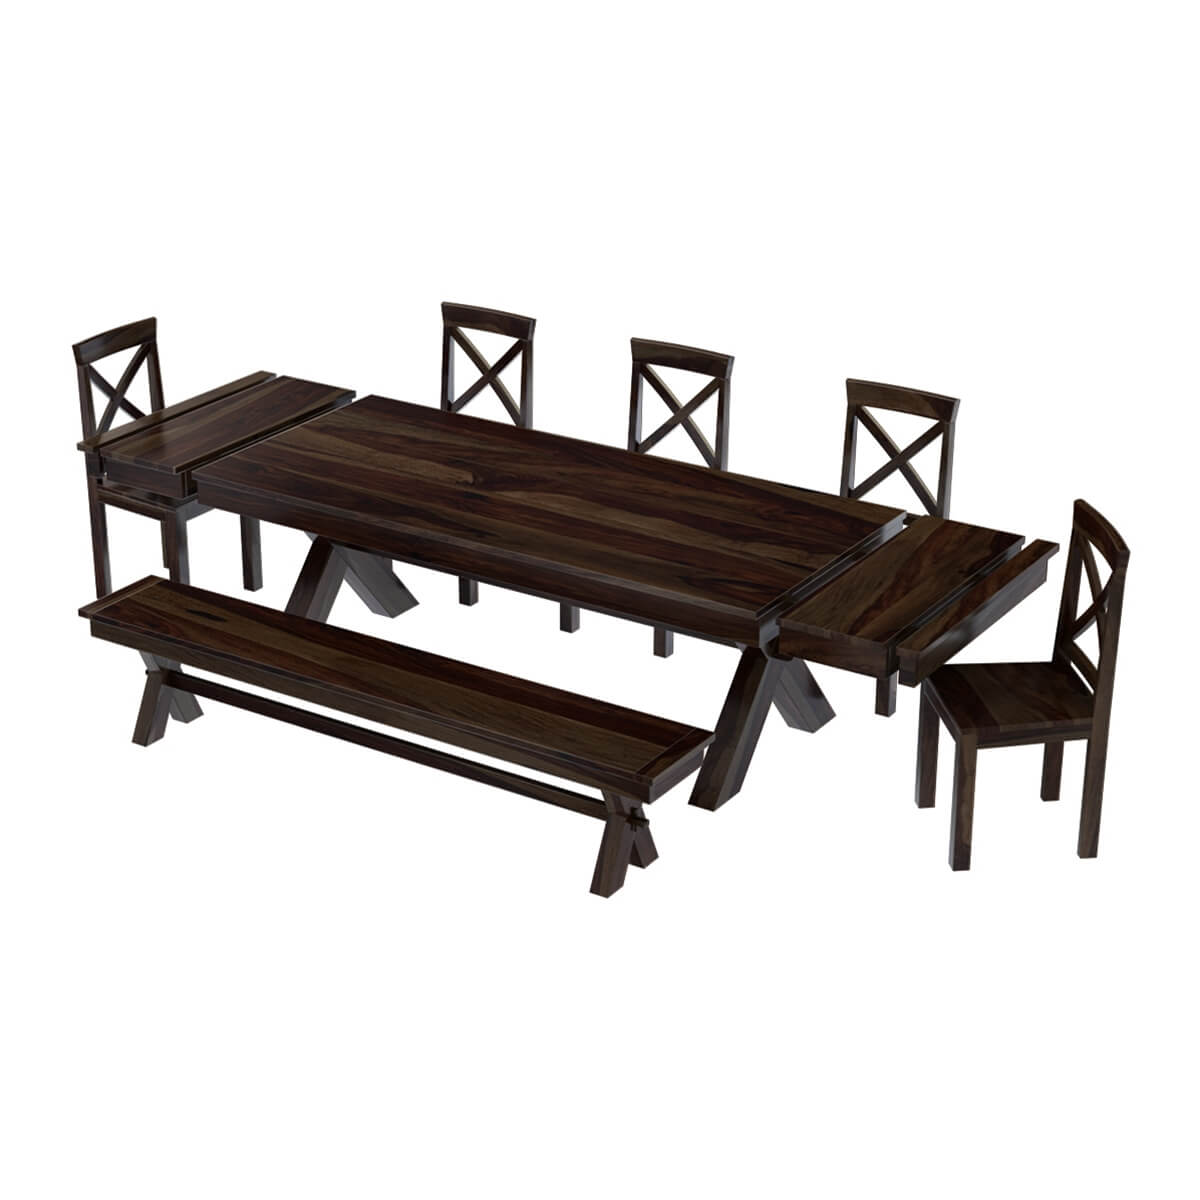 Westside indoor picnic style dining table bench set with for Dinette table with bench